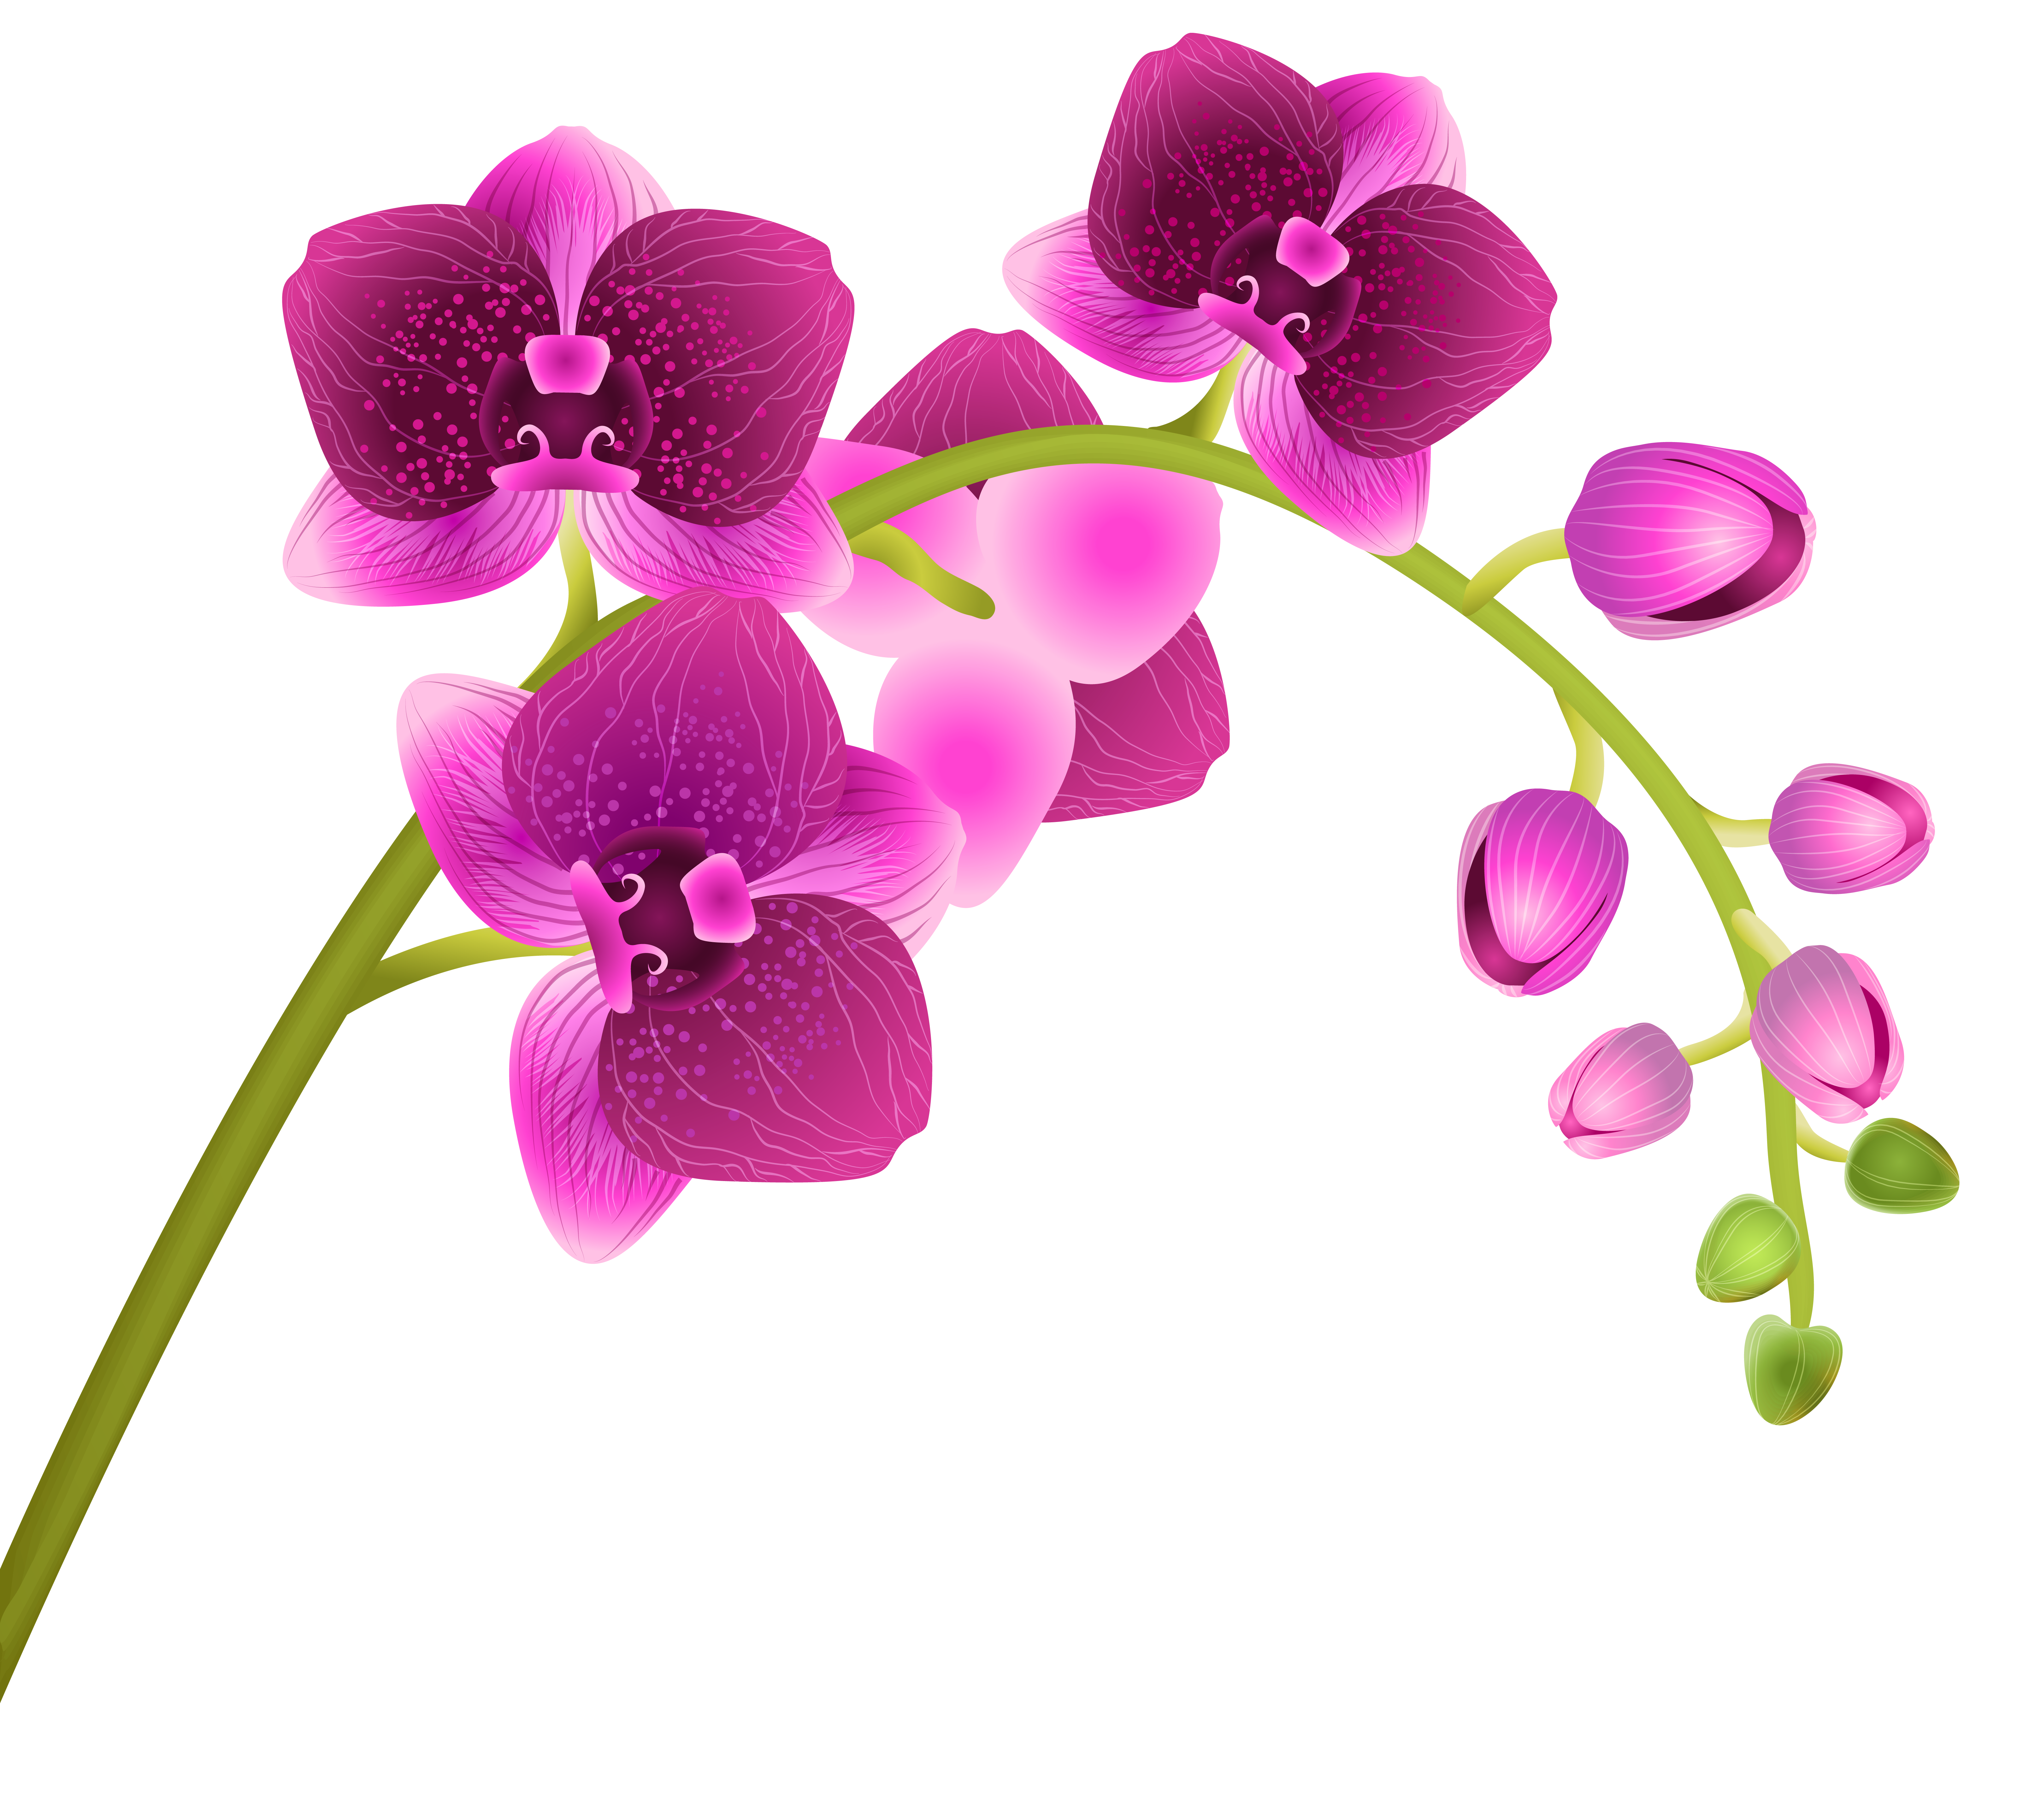 Orchid Flower Transparent Png Clip Art Image Gallery Yopriceville High Quality Images And Transpa In 2020 Simple Flower Drawing Flower Drawing Flower Illustration